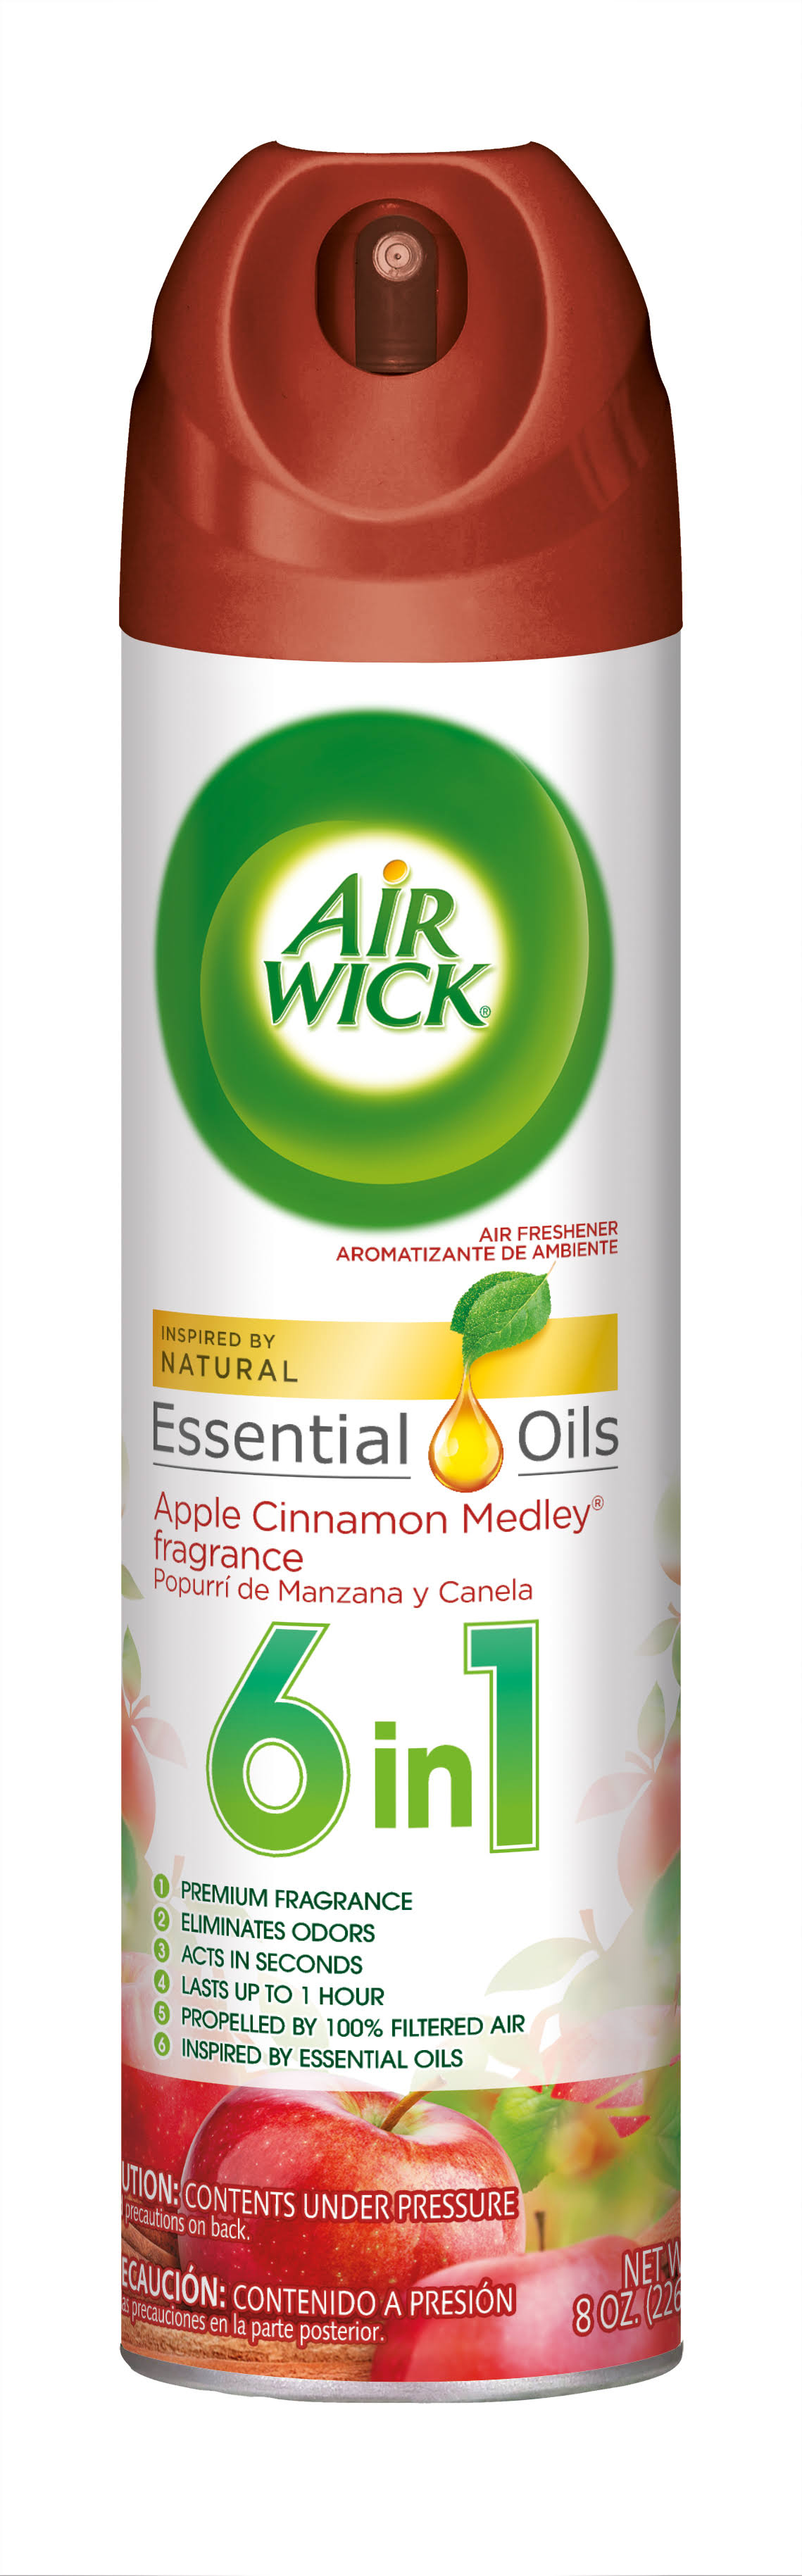 Air Wick Air Freshener Spray - Apple Cinnamon, 8 Oz